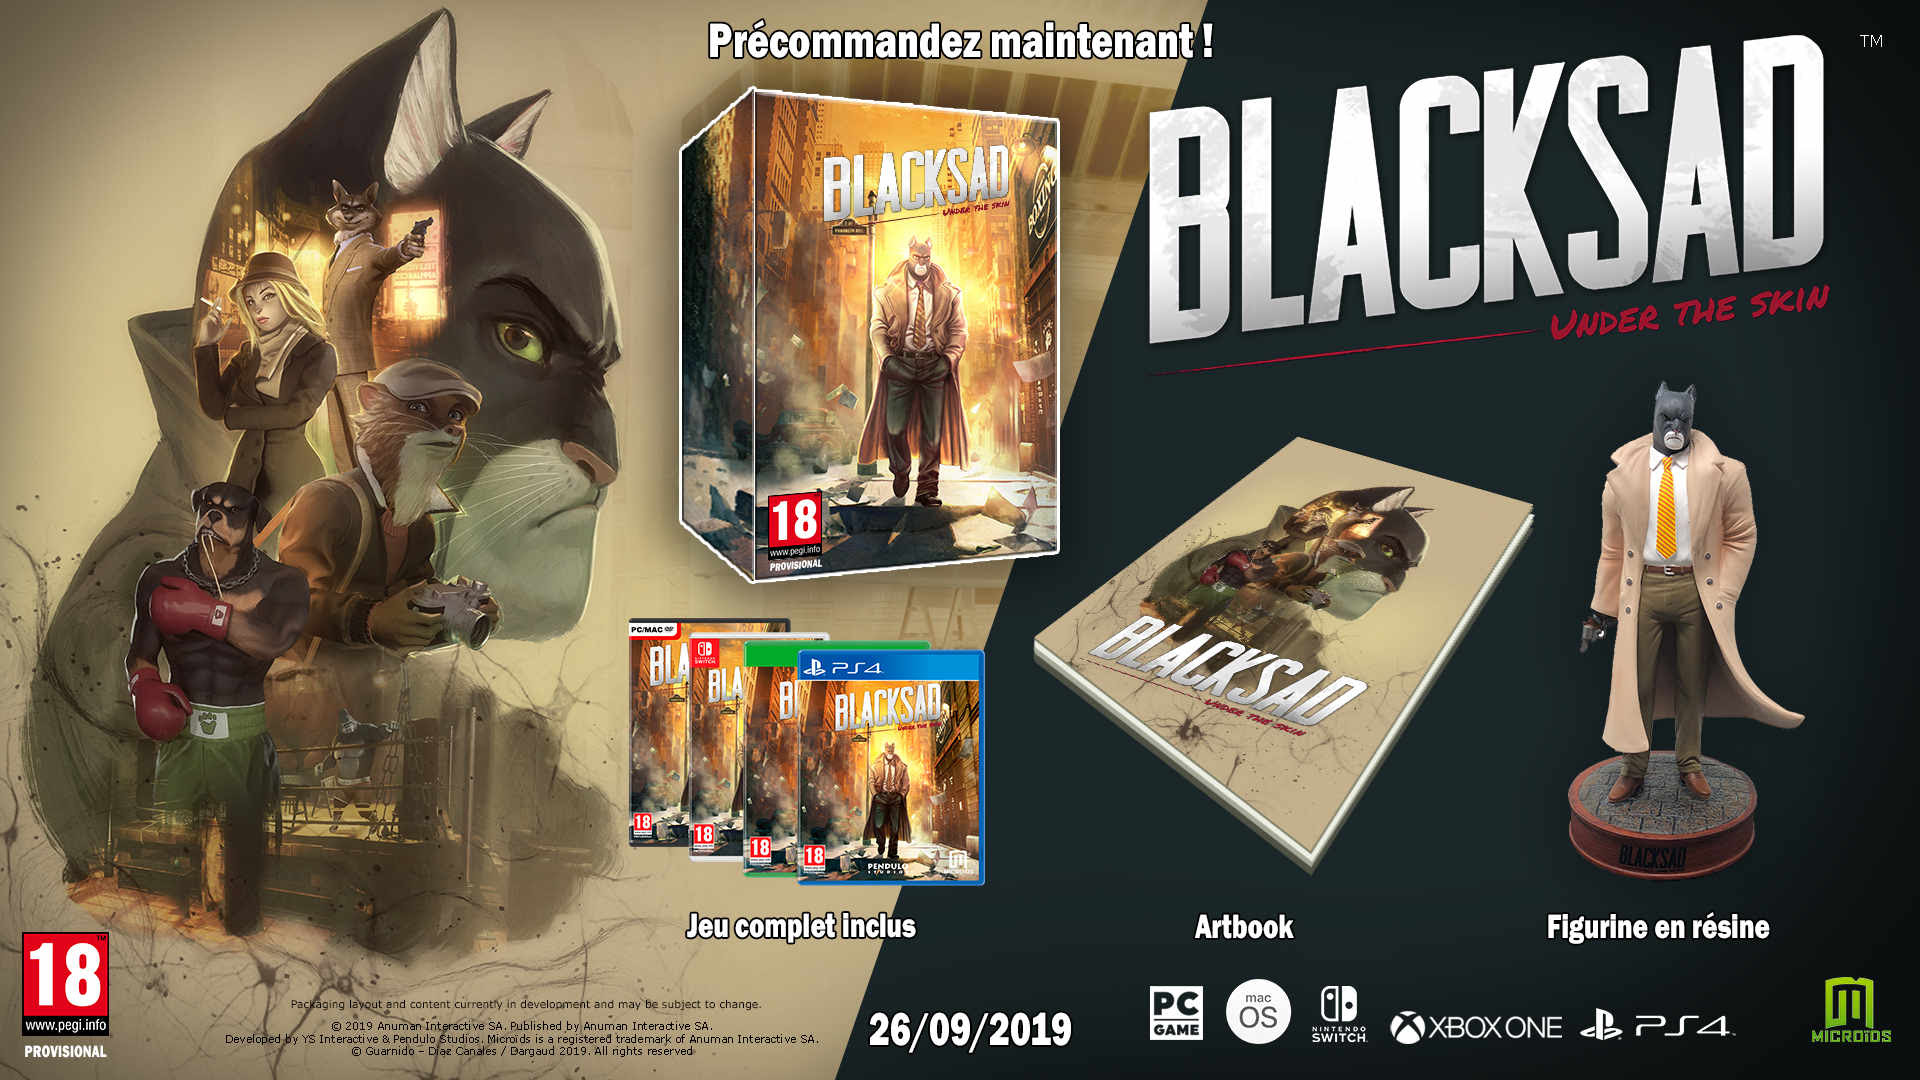 blacksad_collector_mockupV03_FR.jpg